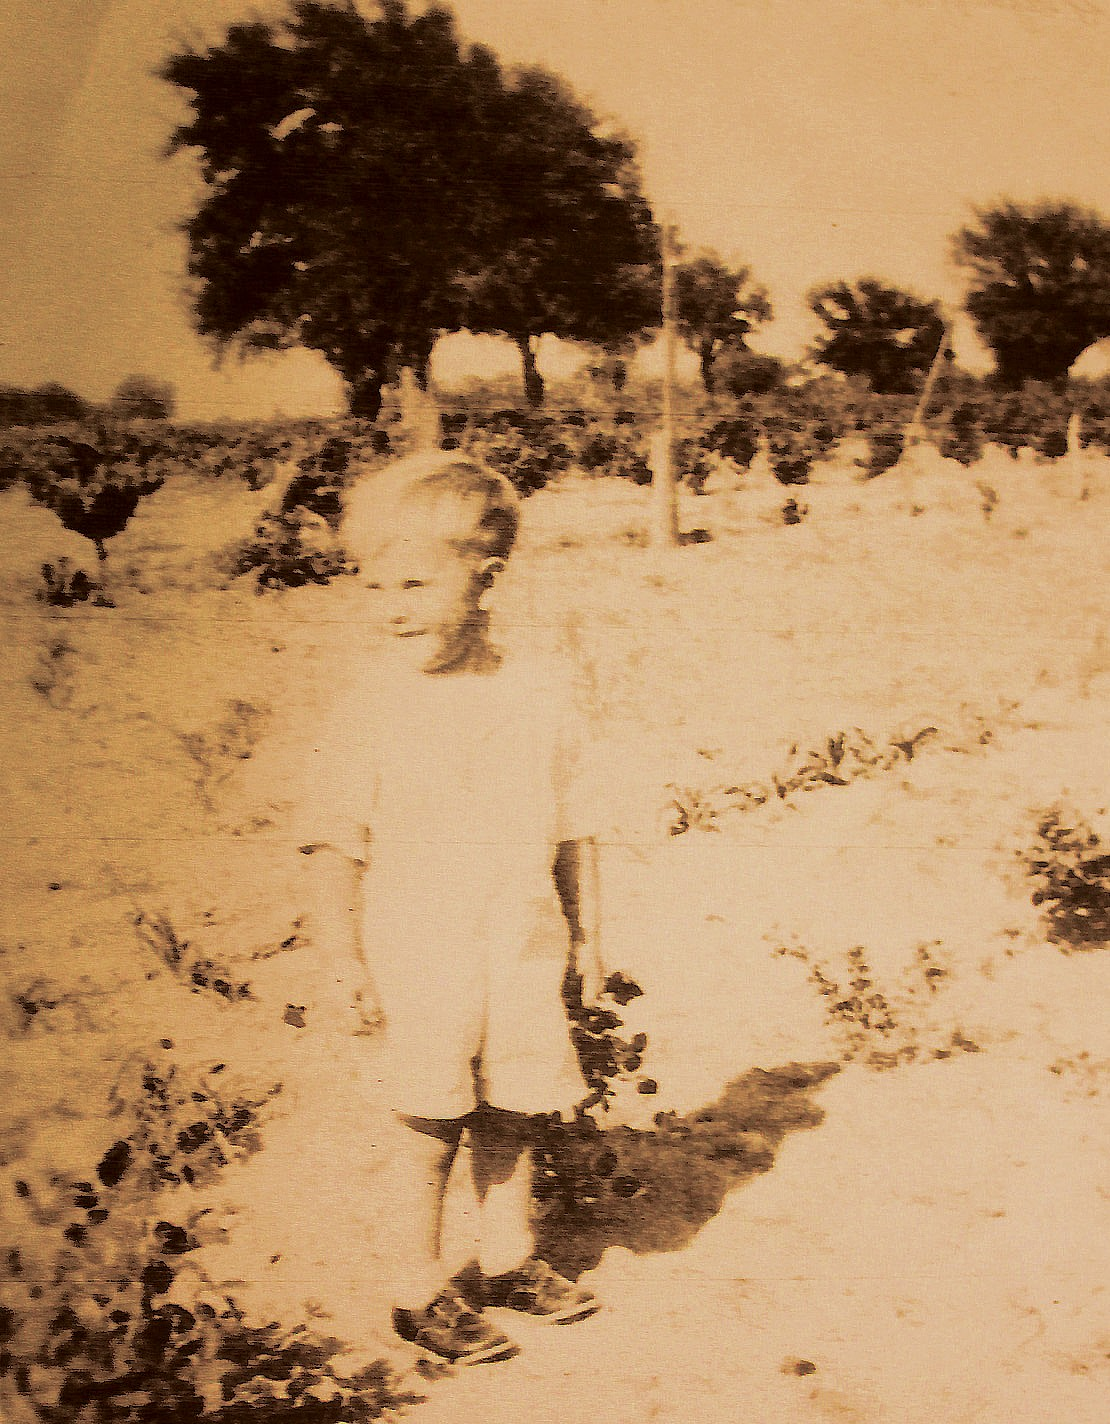 In 1938, at the age of 5, Norman Porter, in his grandmother Leona Brown's backyard. This was on U.S. 281, north of Pleasanton. In the background is a grape arbor on what is now Repka property.